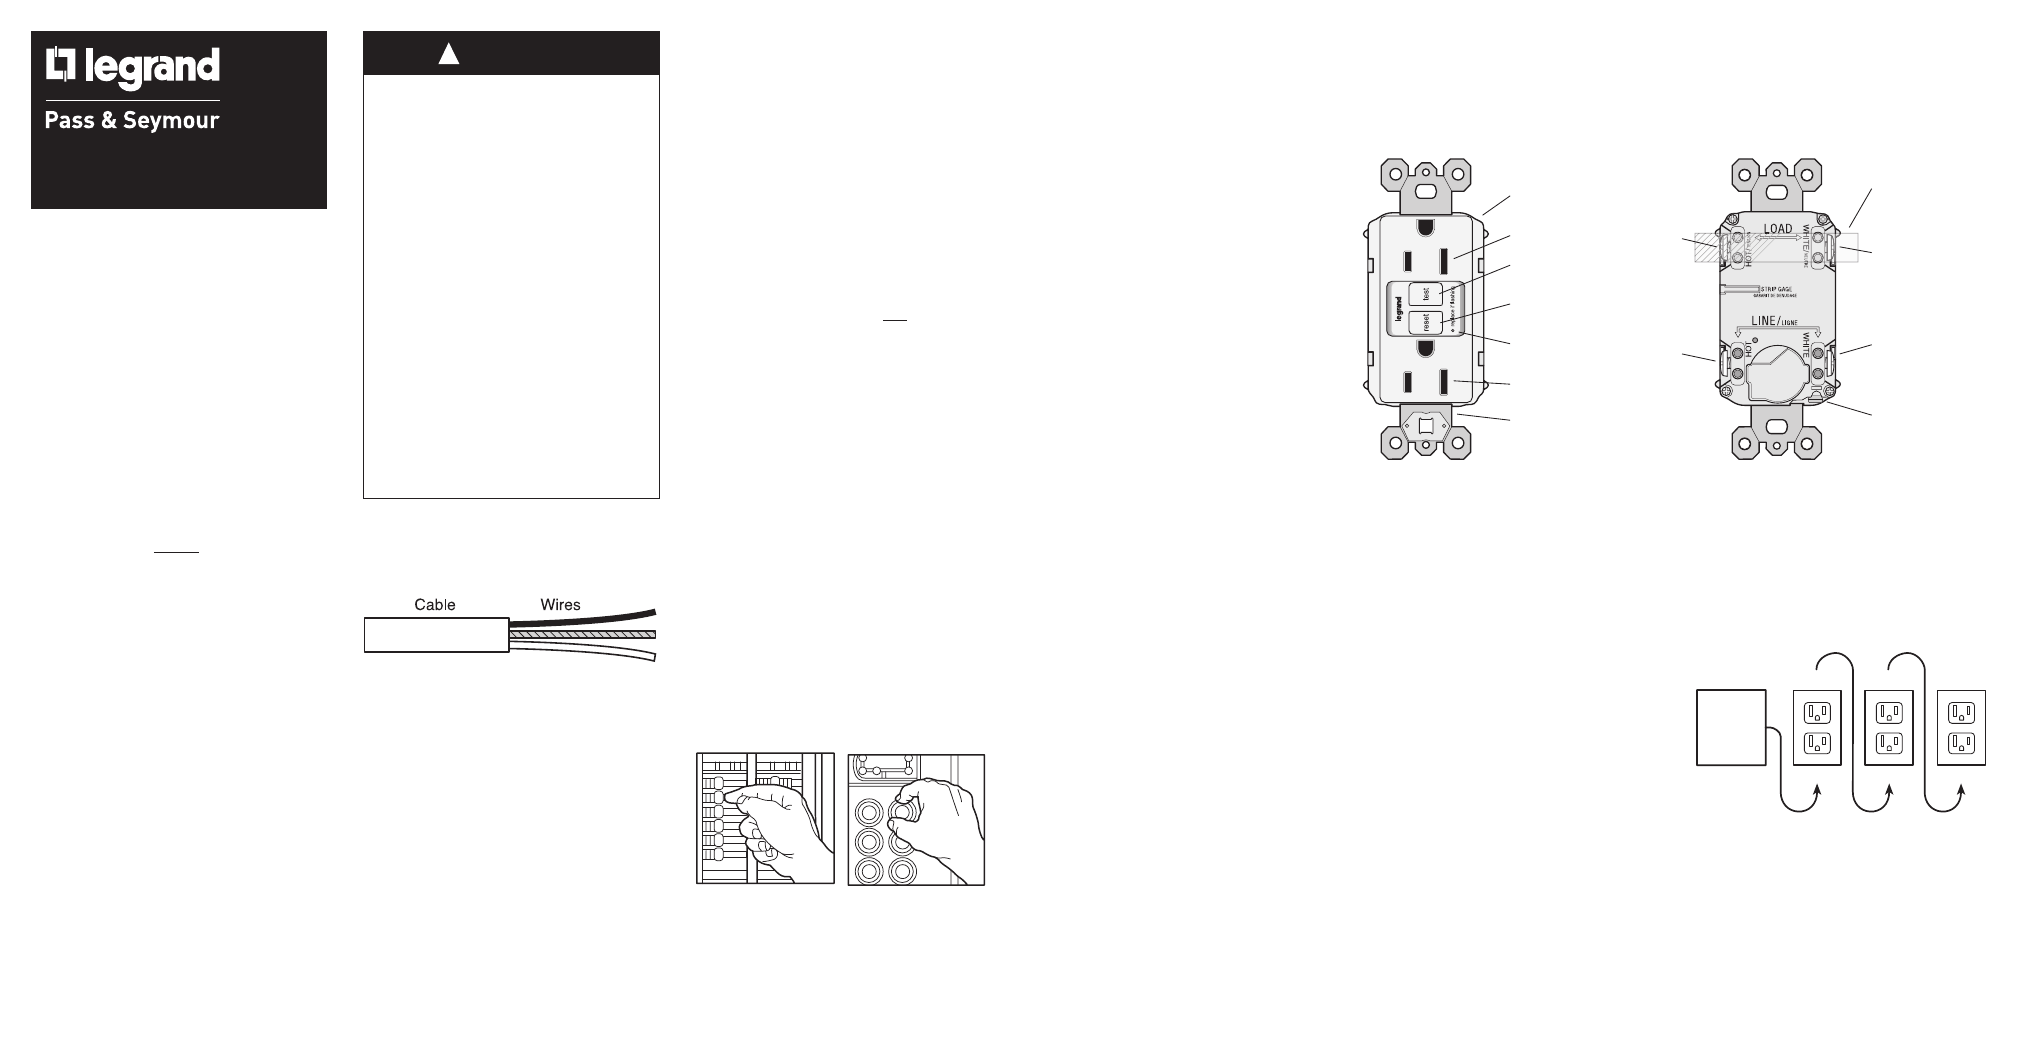 Legrand 1595h Series Gfci Receptacle Revb User Manual 2 Pages Wiring Outlet Diagram Background Image